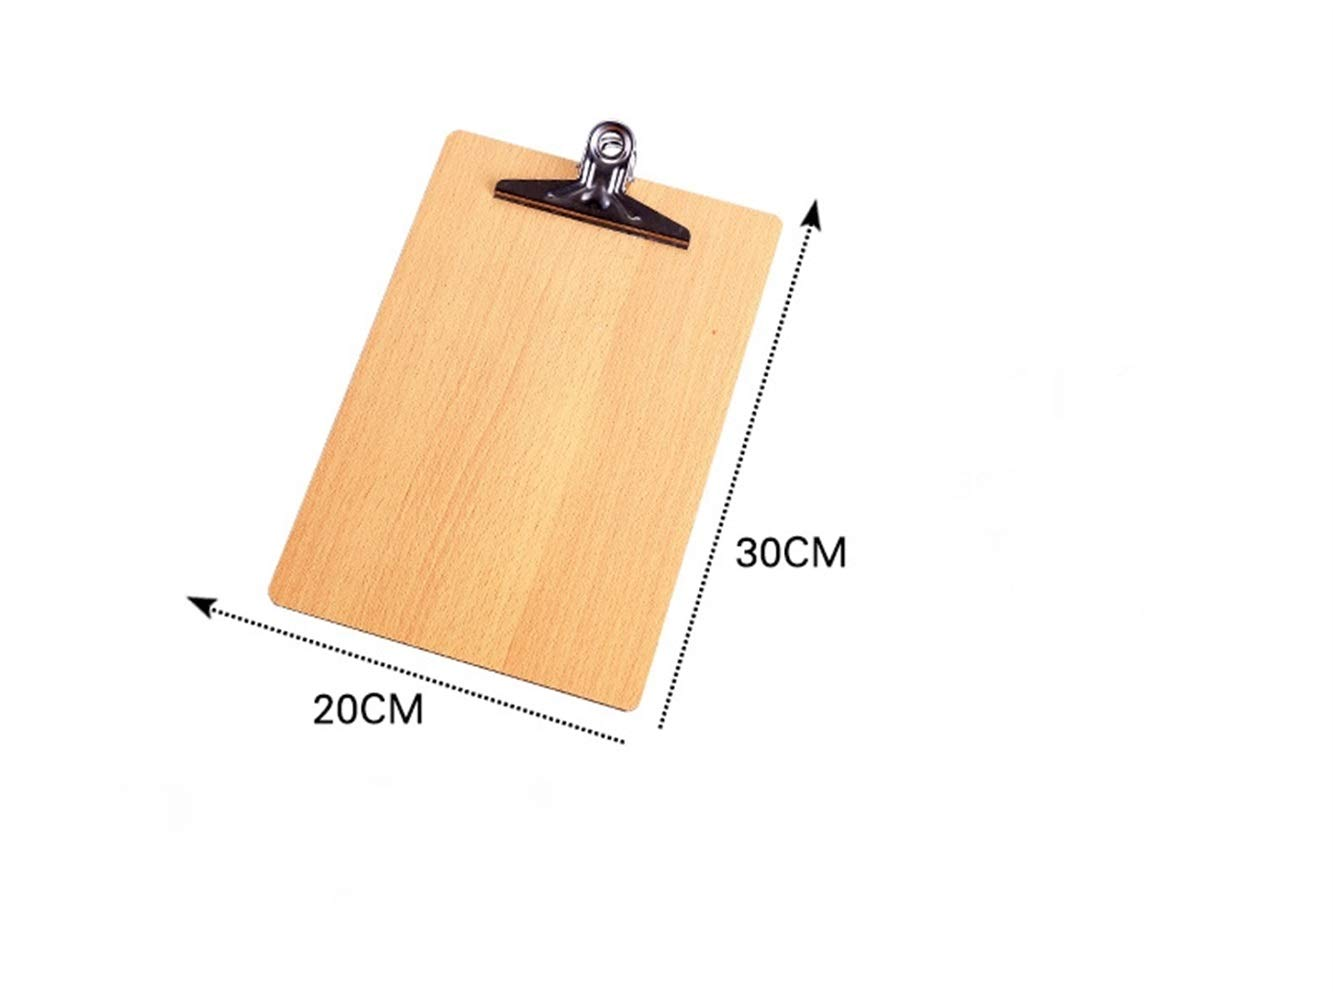 JxucTo A4 Wooden File Clipboard Rounded Corners Duty Clip Menu Board with Hanging Hole(Wooden) (Size : 16K_30x20cm)